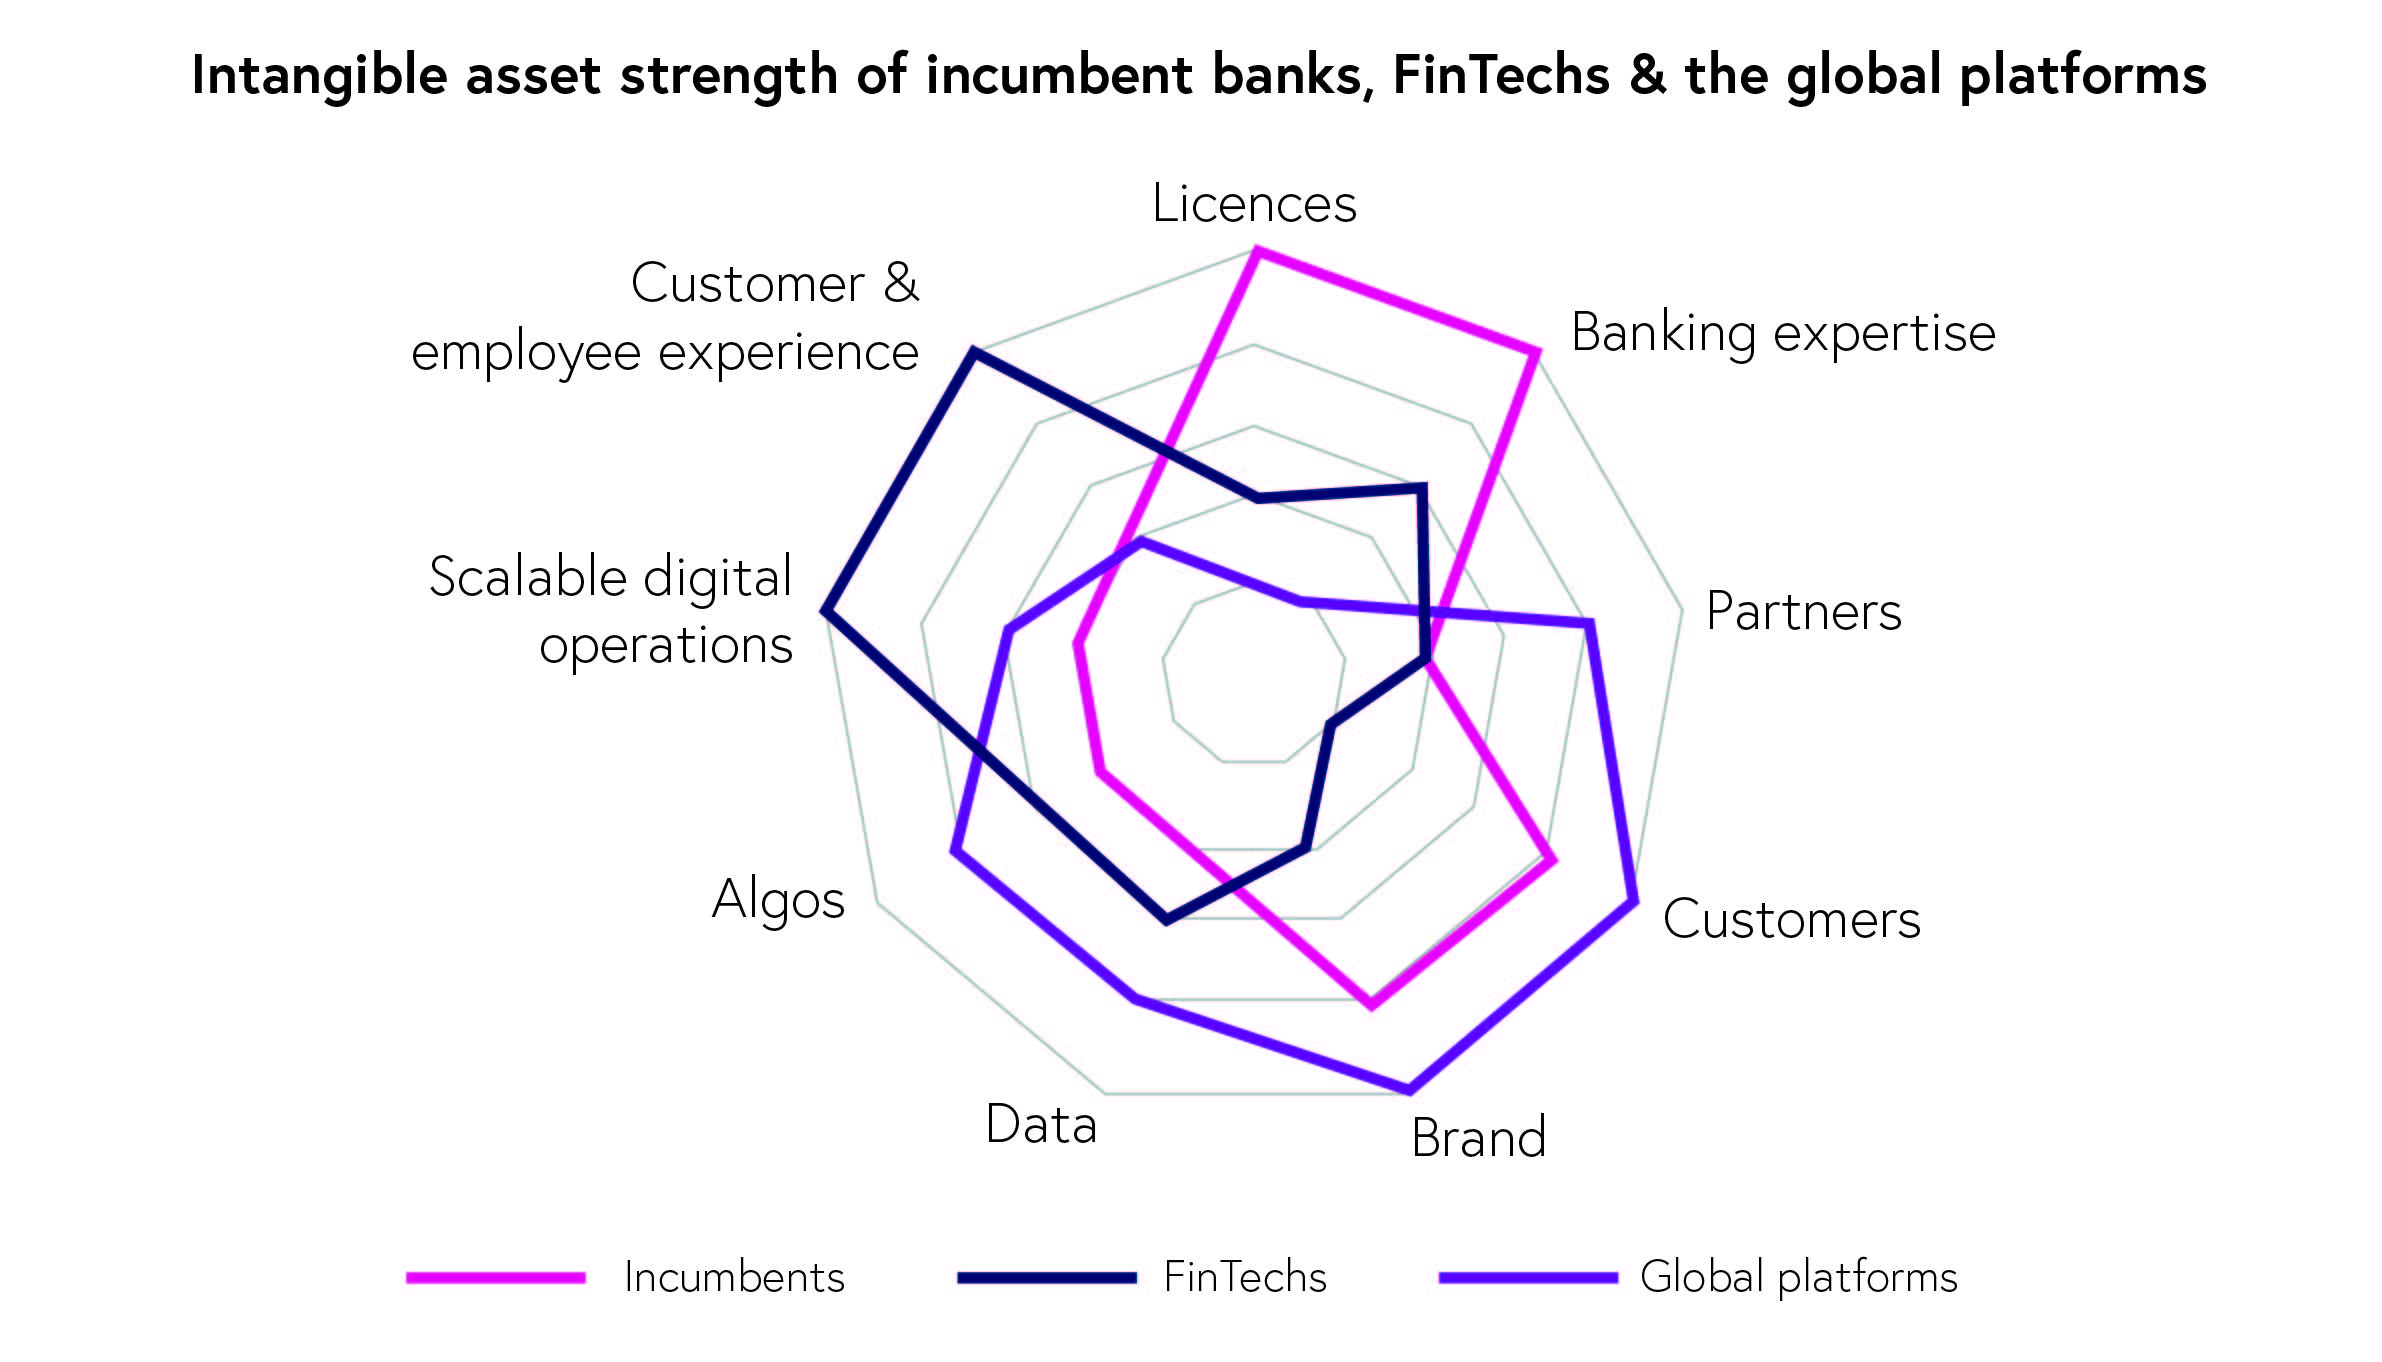 Intangible Asset Strength of Incumbent Banks, FinTechs and Global Platforms